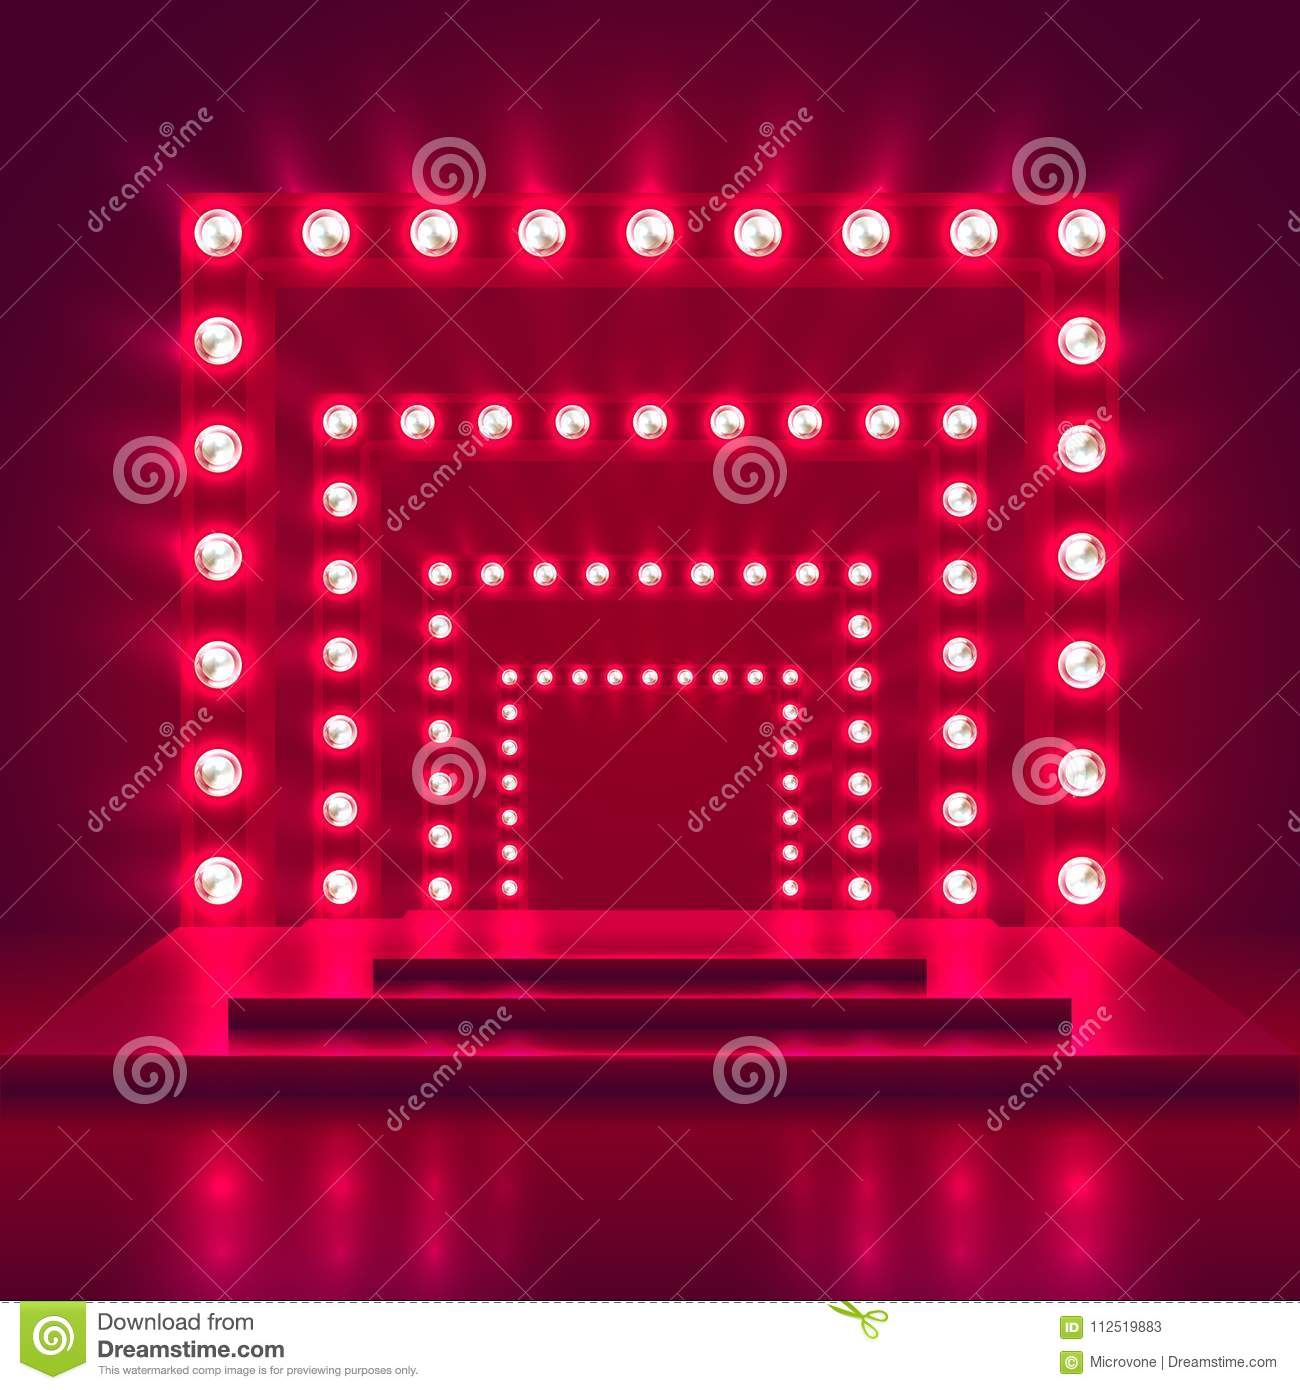 Retro Show Stage With Light Frame Decoration. Game Winner Casino ...